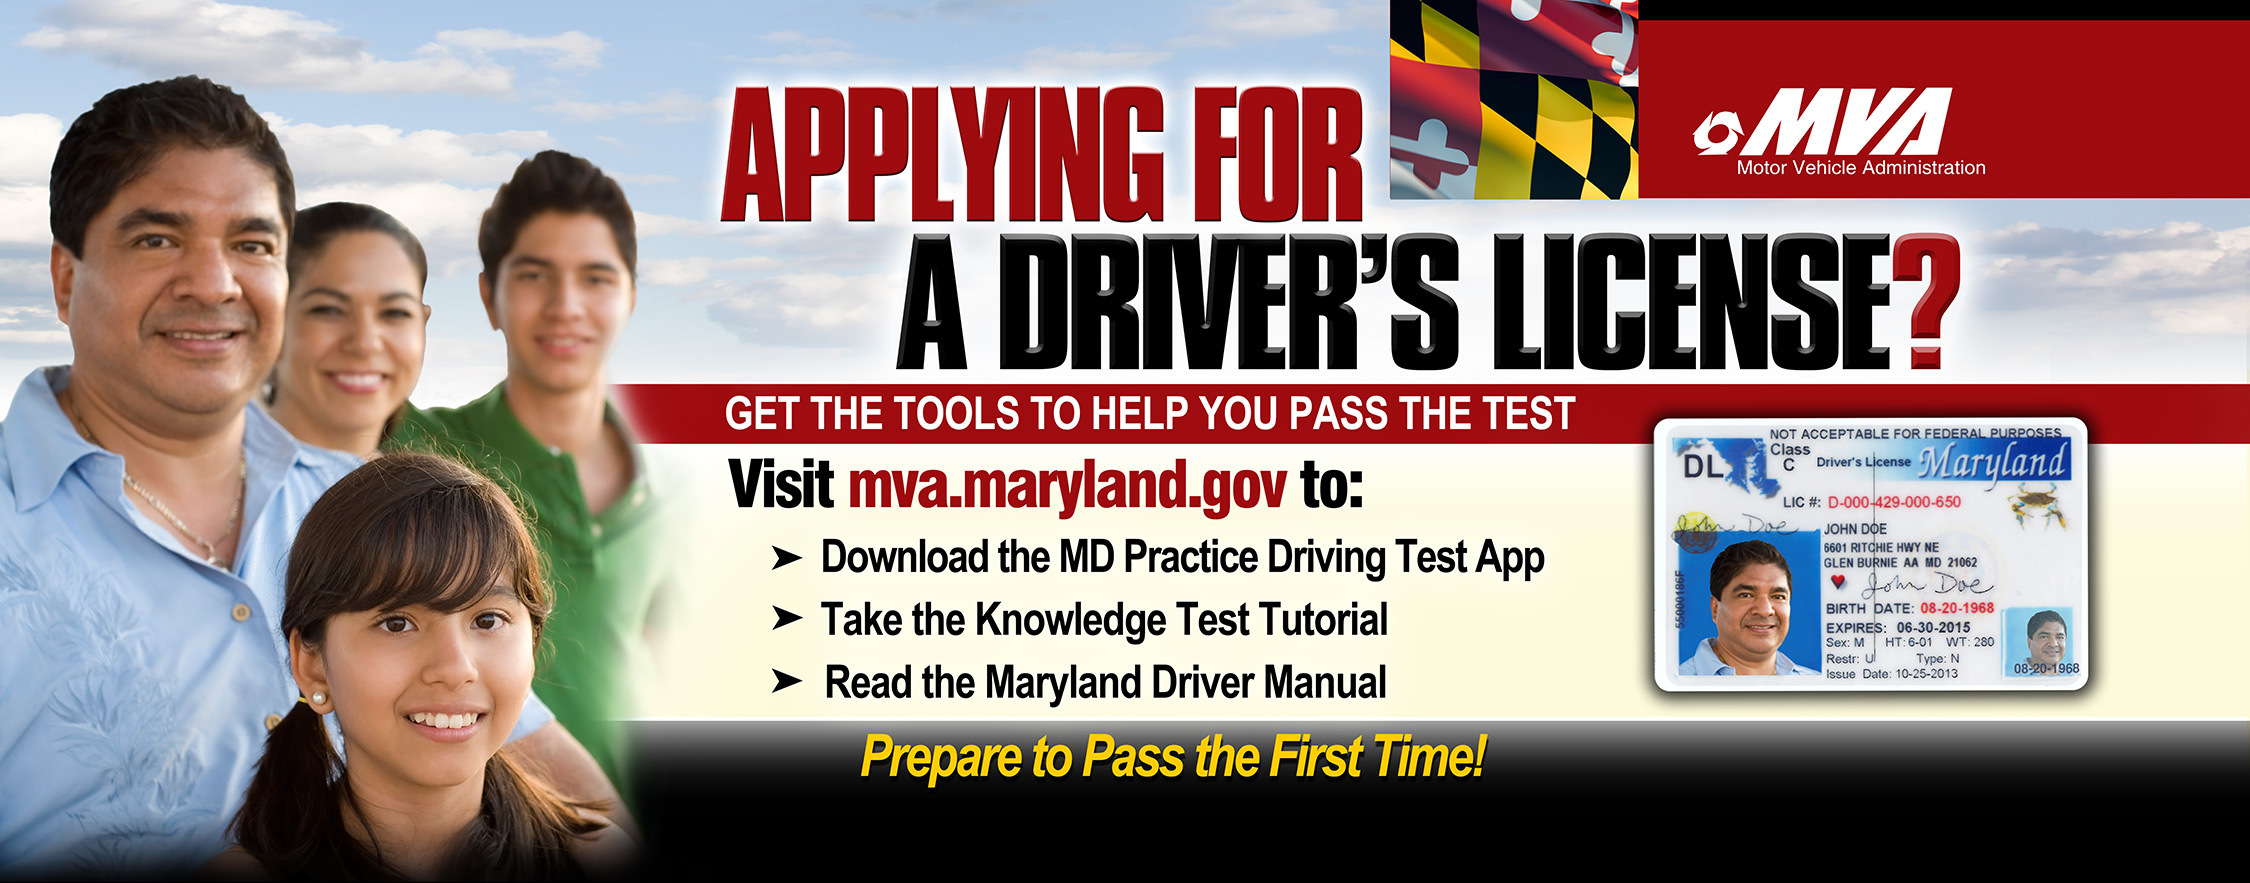 MD Practice Driving Test App (Graphic: Business Wire)